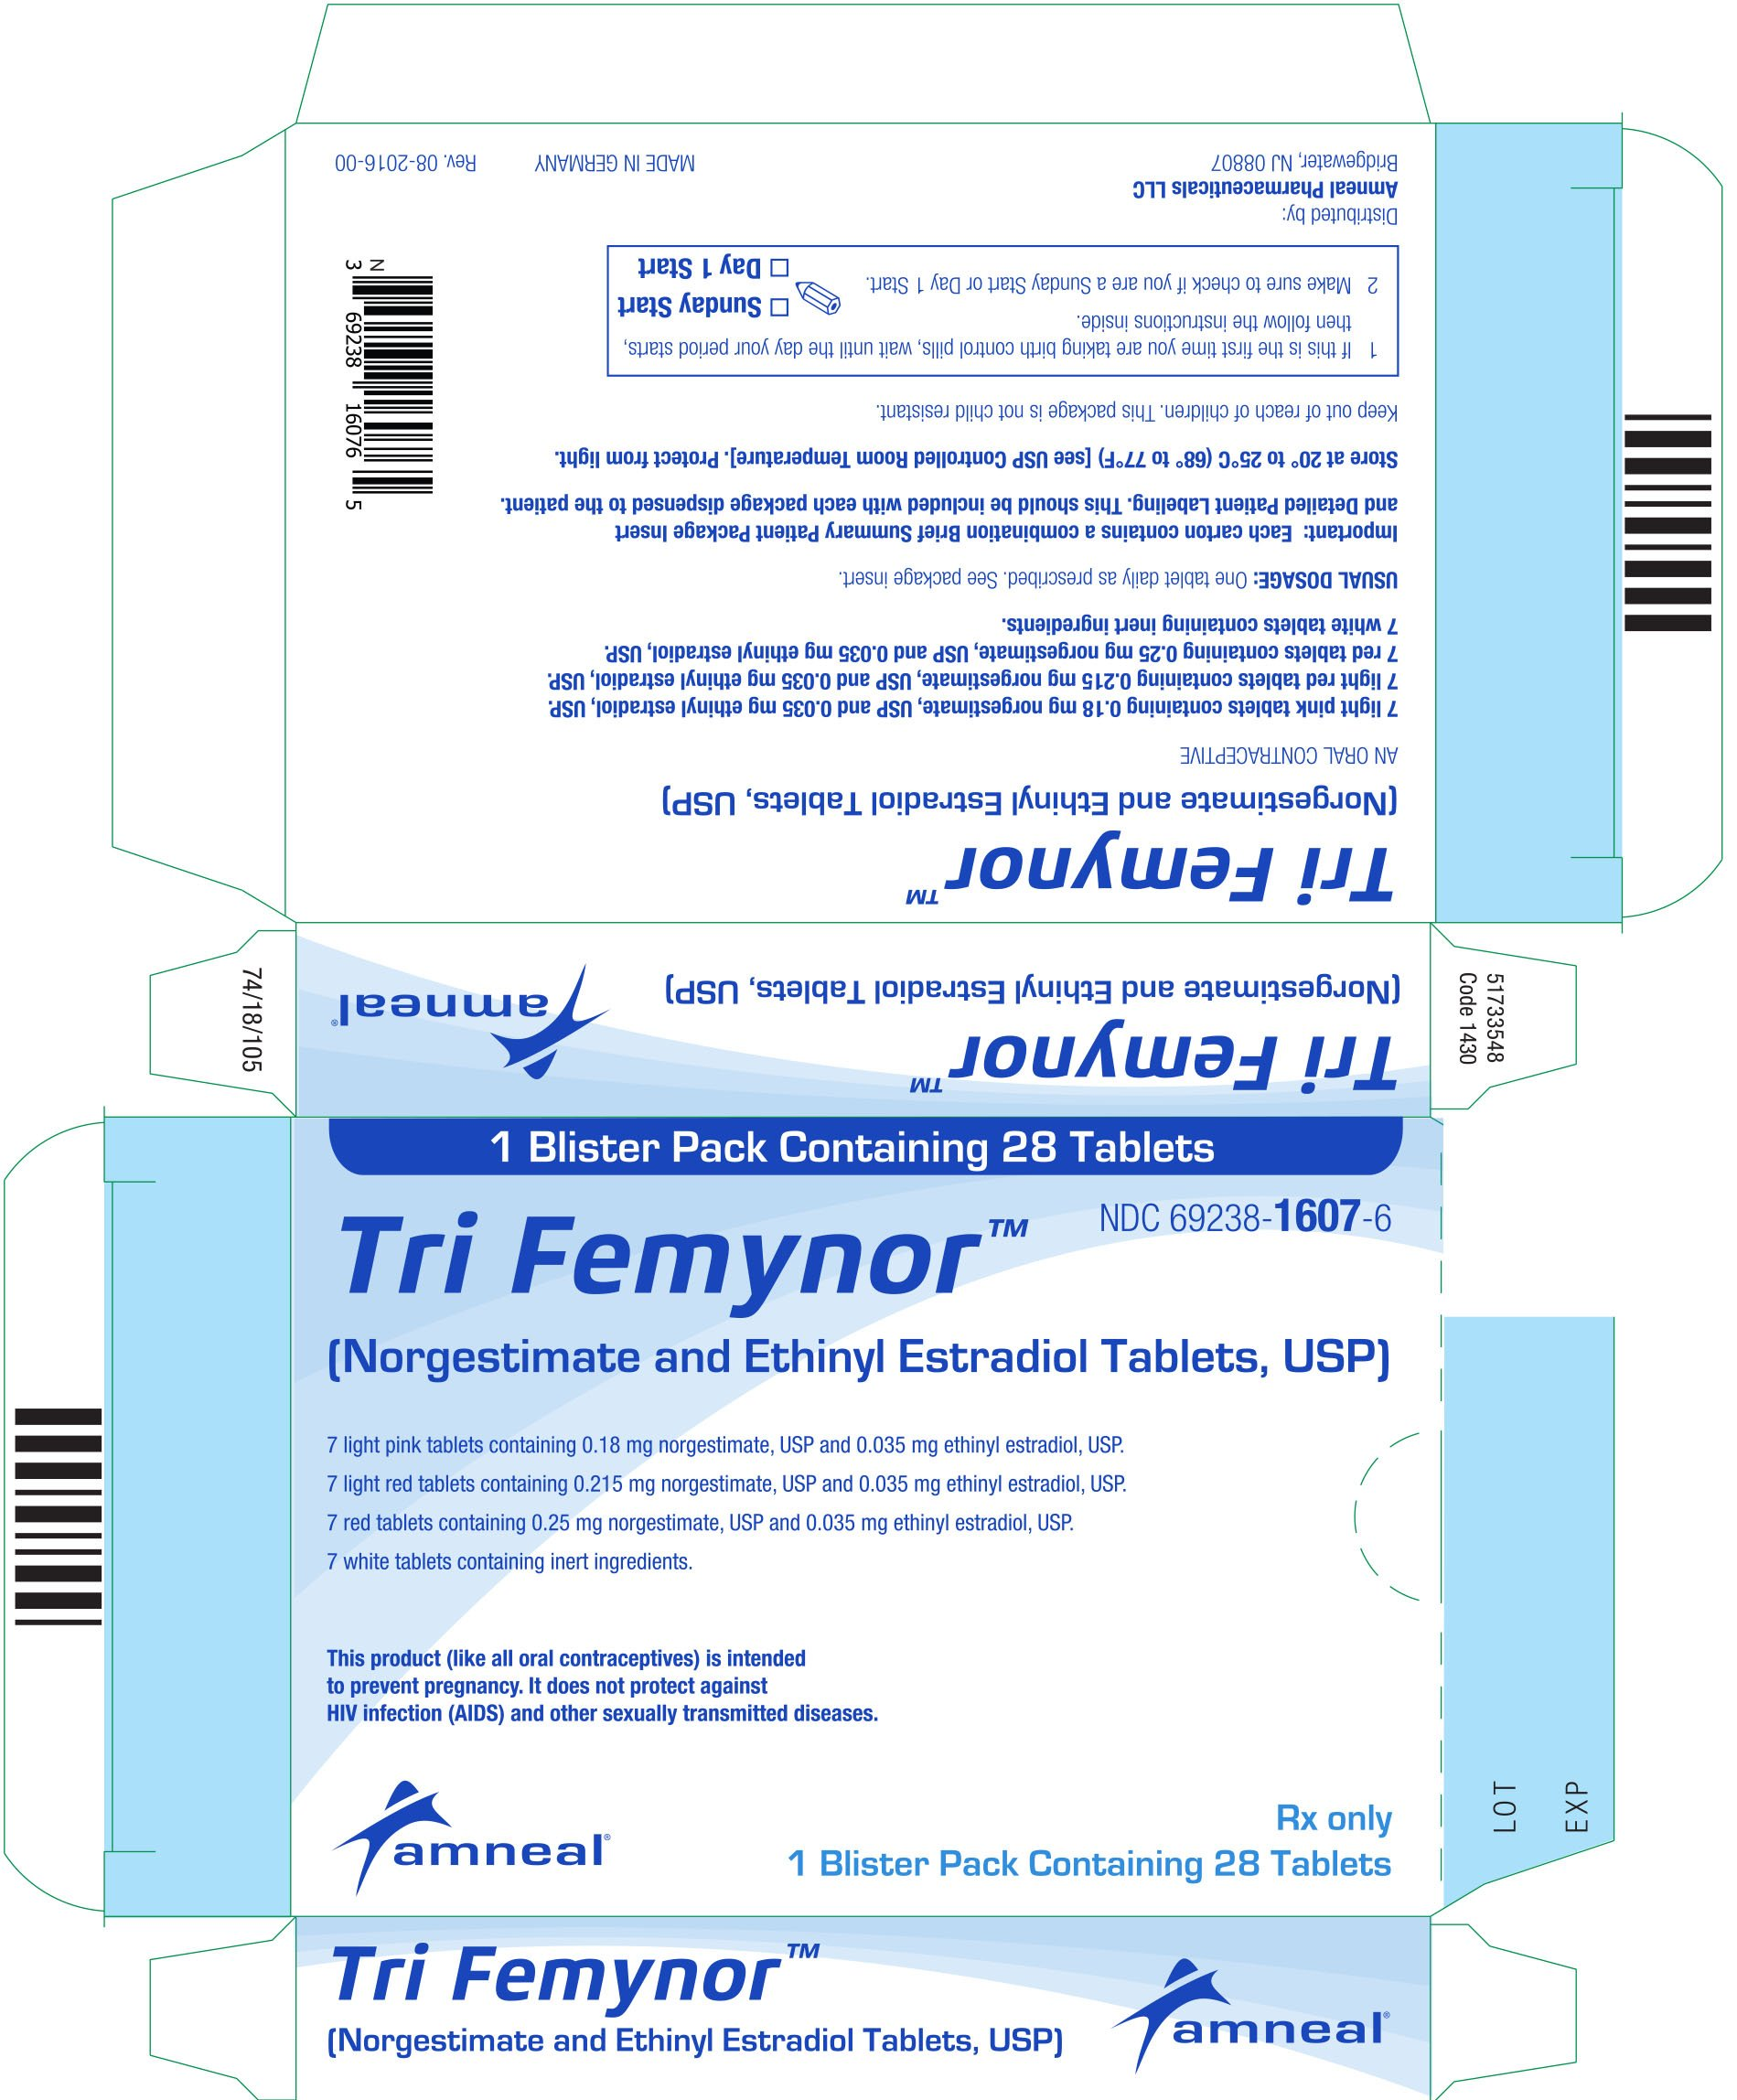 Tri Femynor Fda Prescribing Information Side Effects And Uses